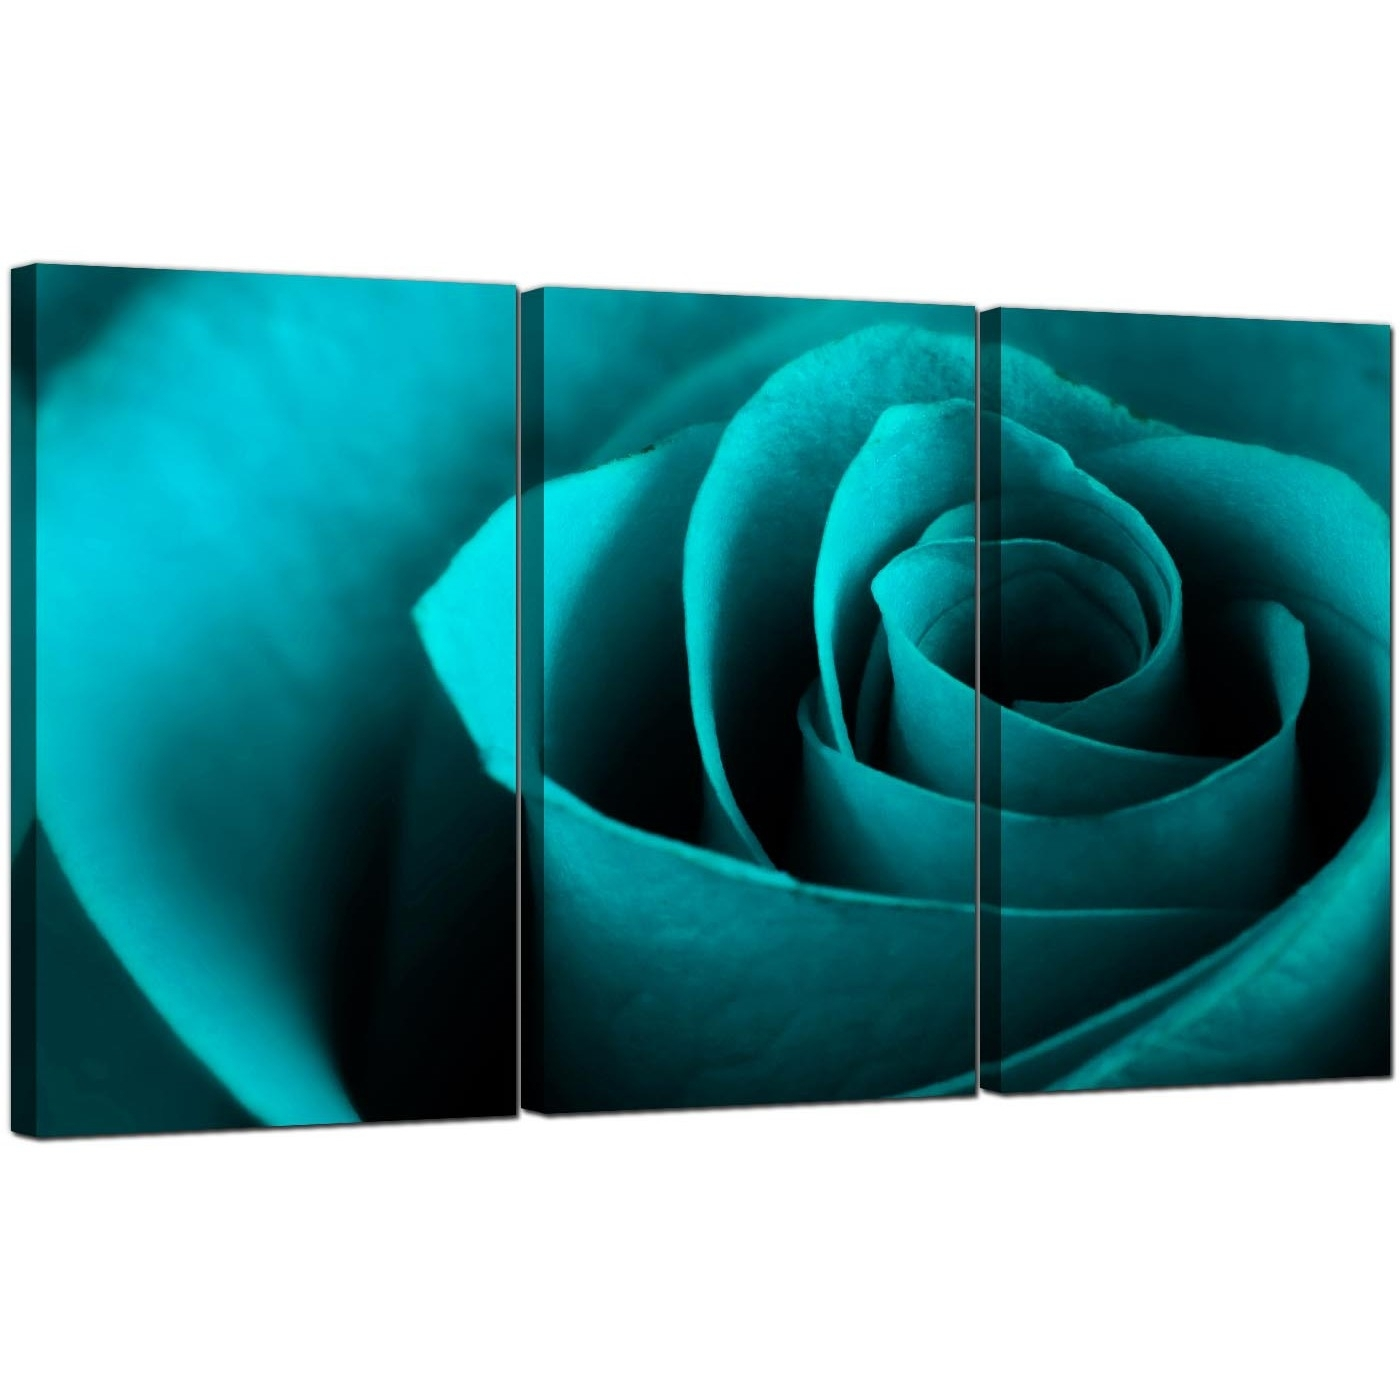 Rose Canvas Art Set Of 3 For Your Living Room Inside 2017 Roses Canvas Wall Art (View 13 of 15)